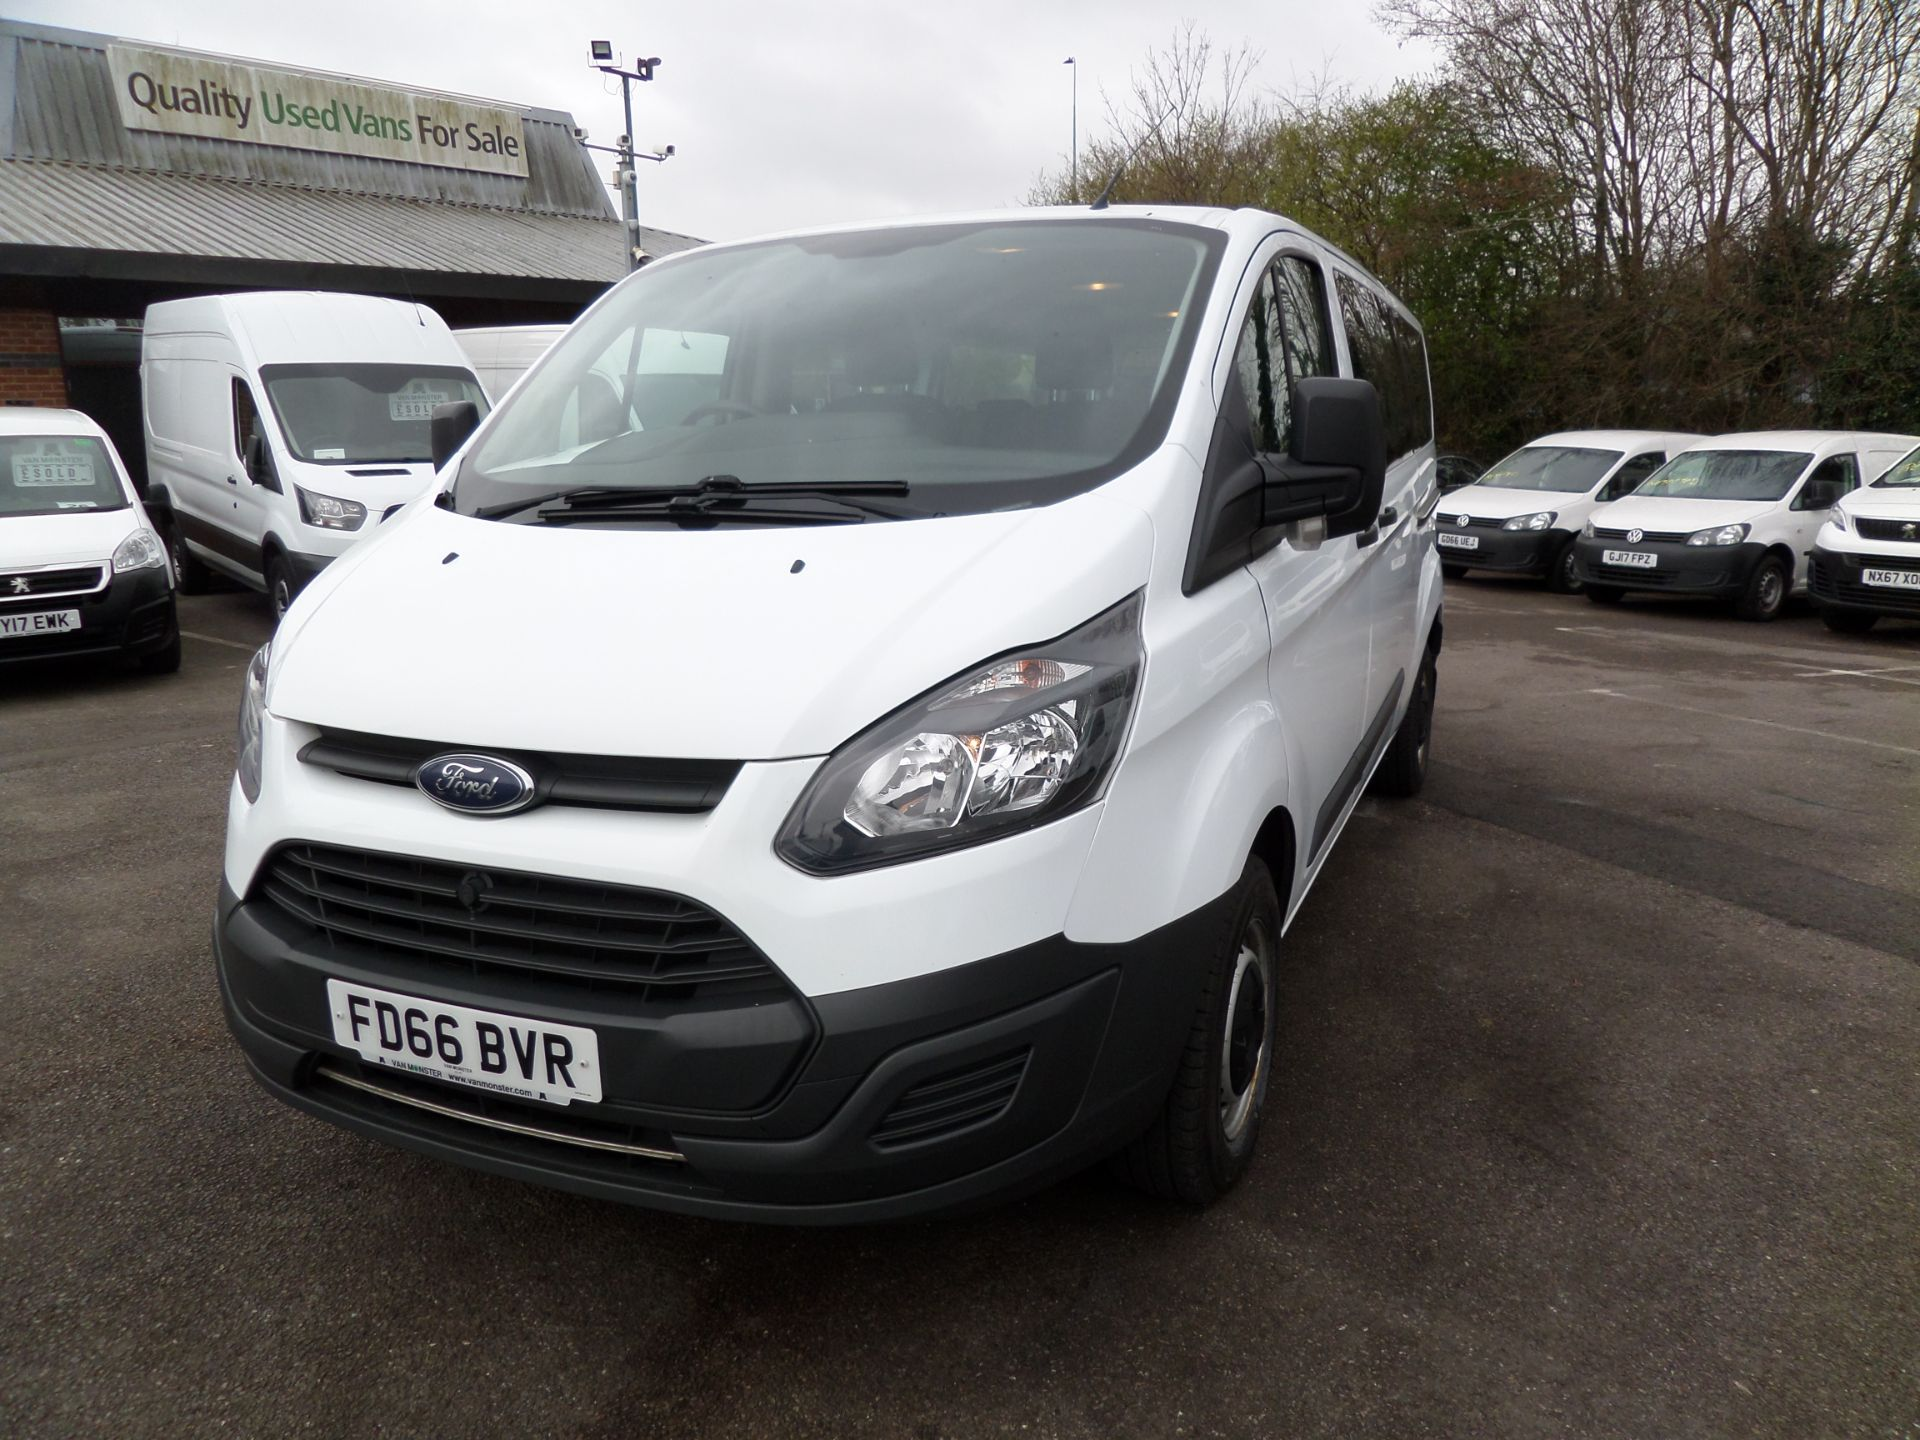 2016 Ford Transit Custom 2.0 Tdci 130Ps Low Roof Kombi Van Euro 6 (FD66BVR) Image 9